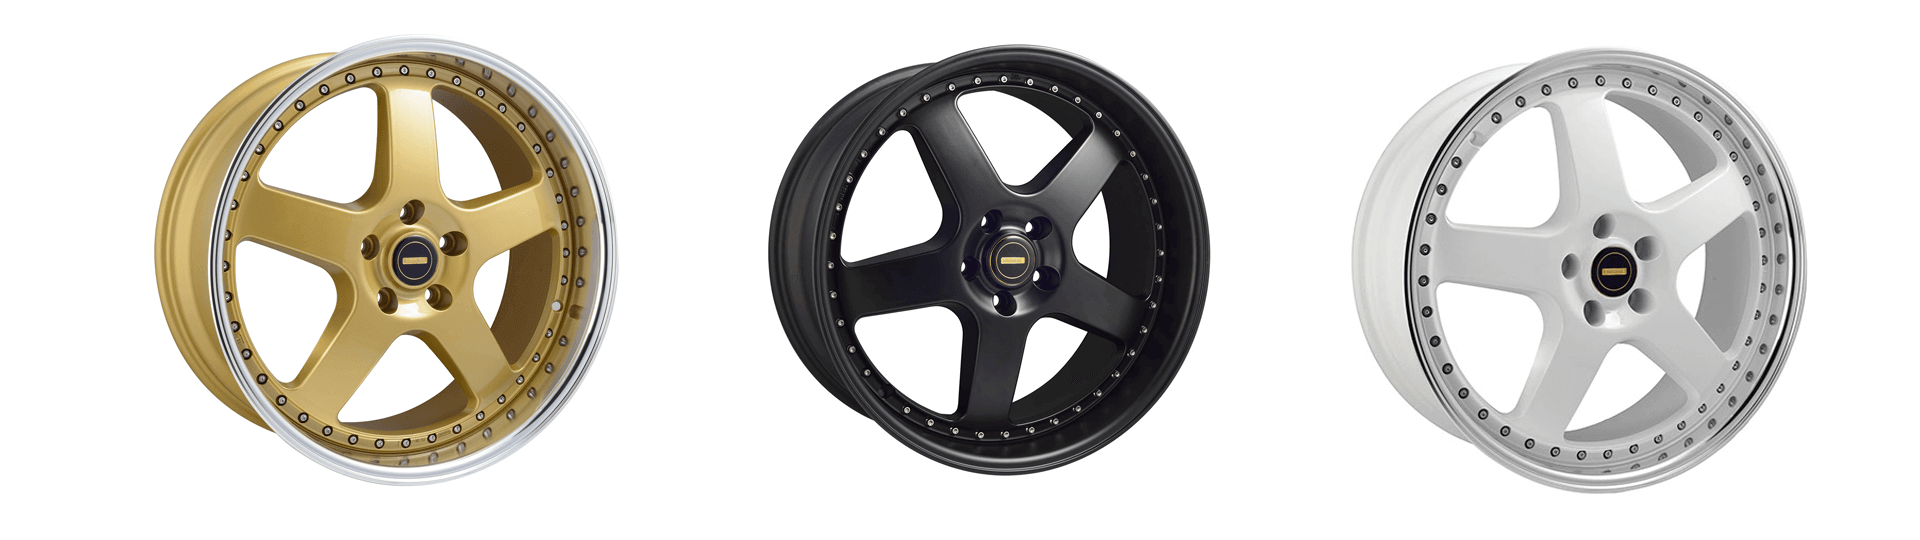 Muscle Car Rims Sale On Hottest Style Muscle Car Wheels